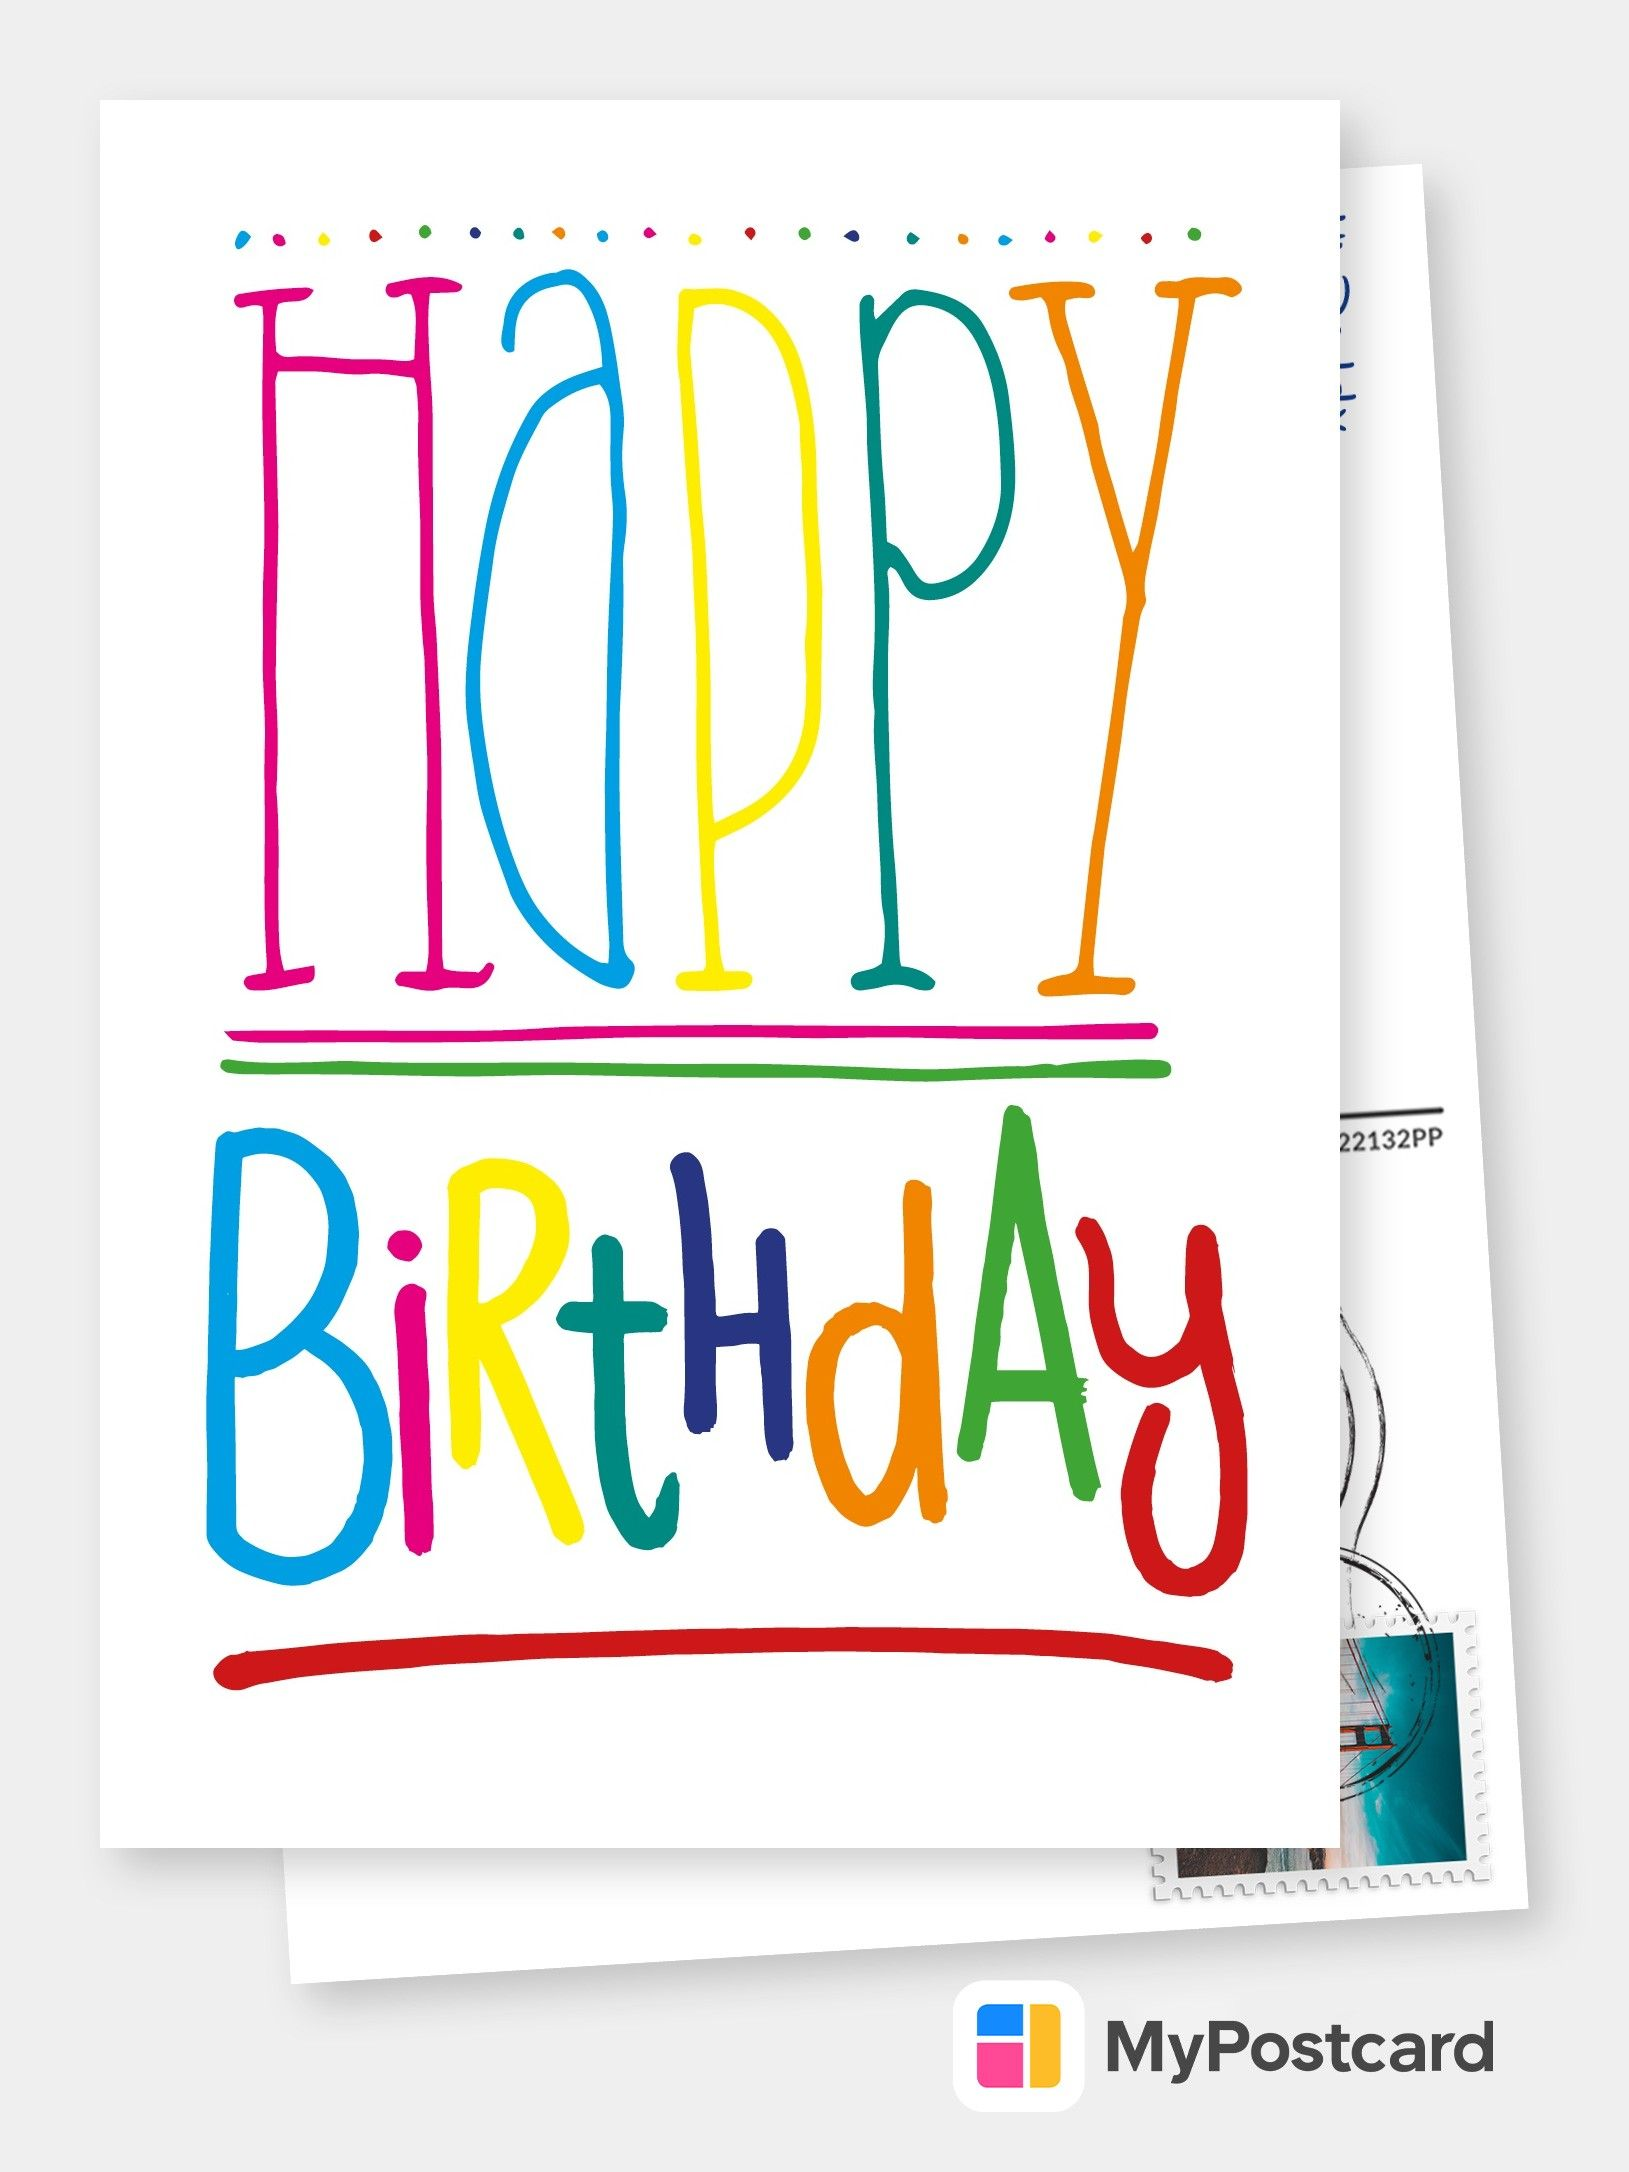 Personalized Free Happy Birthday Cards Templates Printable And Mailed For You International Free Shipping Worldwide Postcard Service Or Postcards App Free Happy Birthday Cards Happy Birthday Printable Happy Birthday Greeting Card